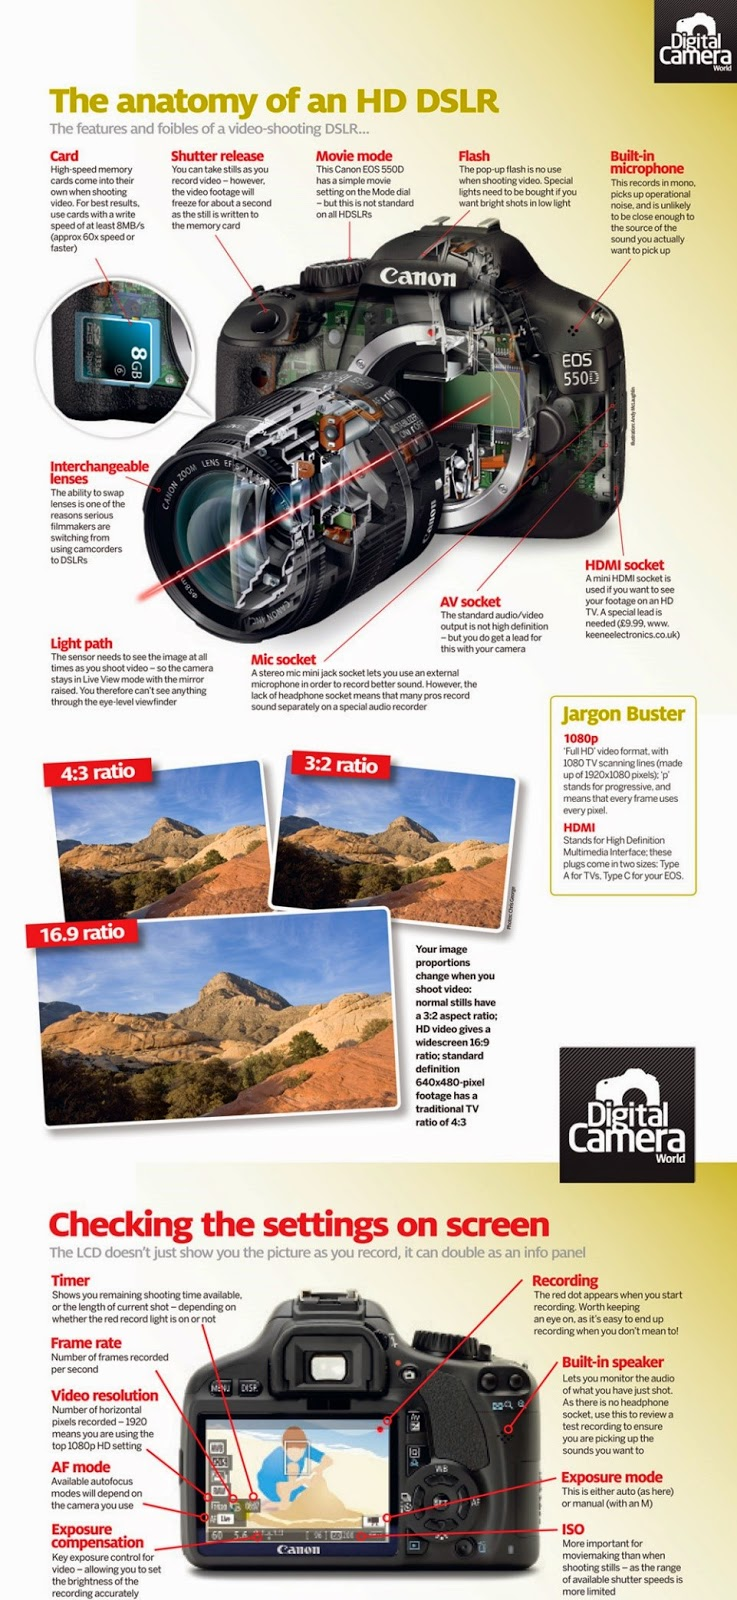 44 essential digital camera tips and tricks | Mulai dari sini...